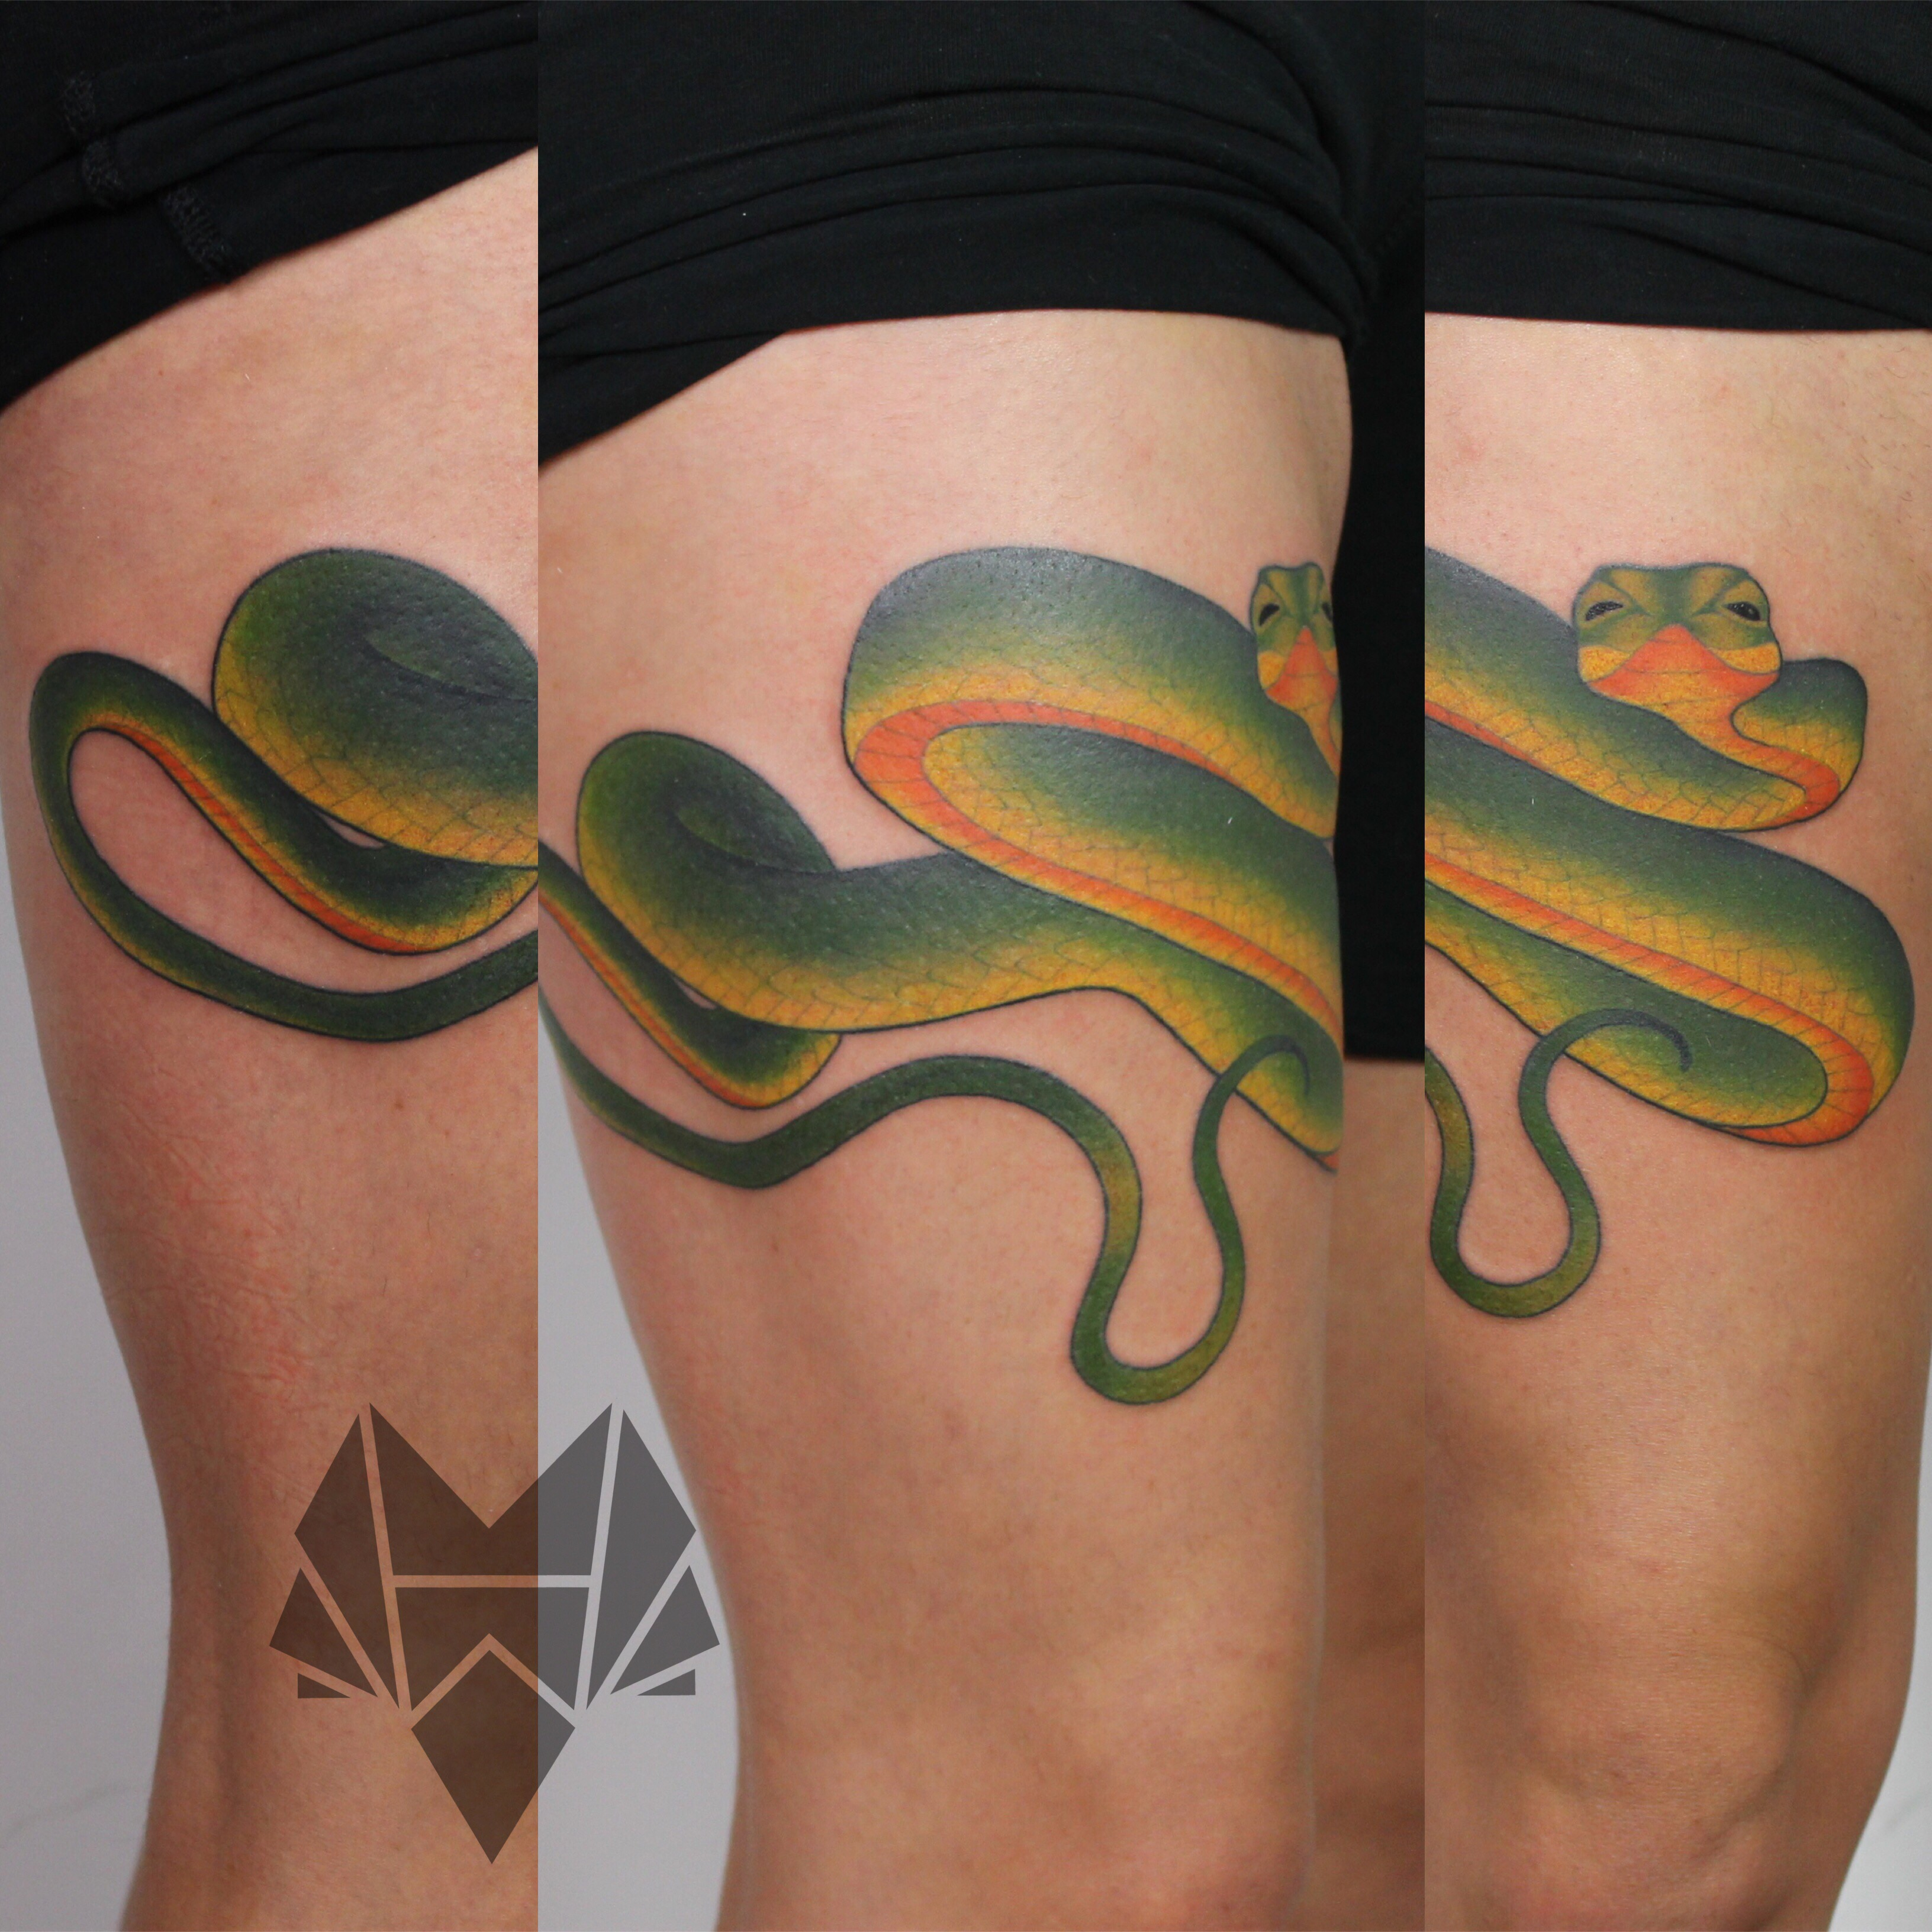 greensnaketattoo